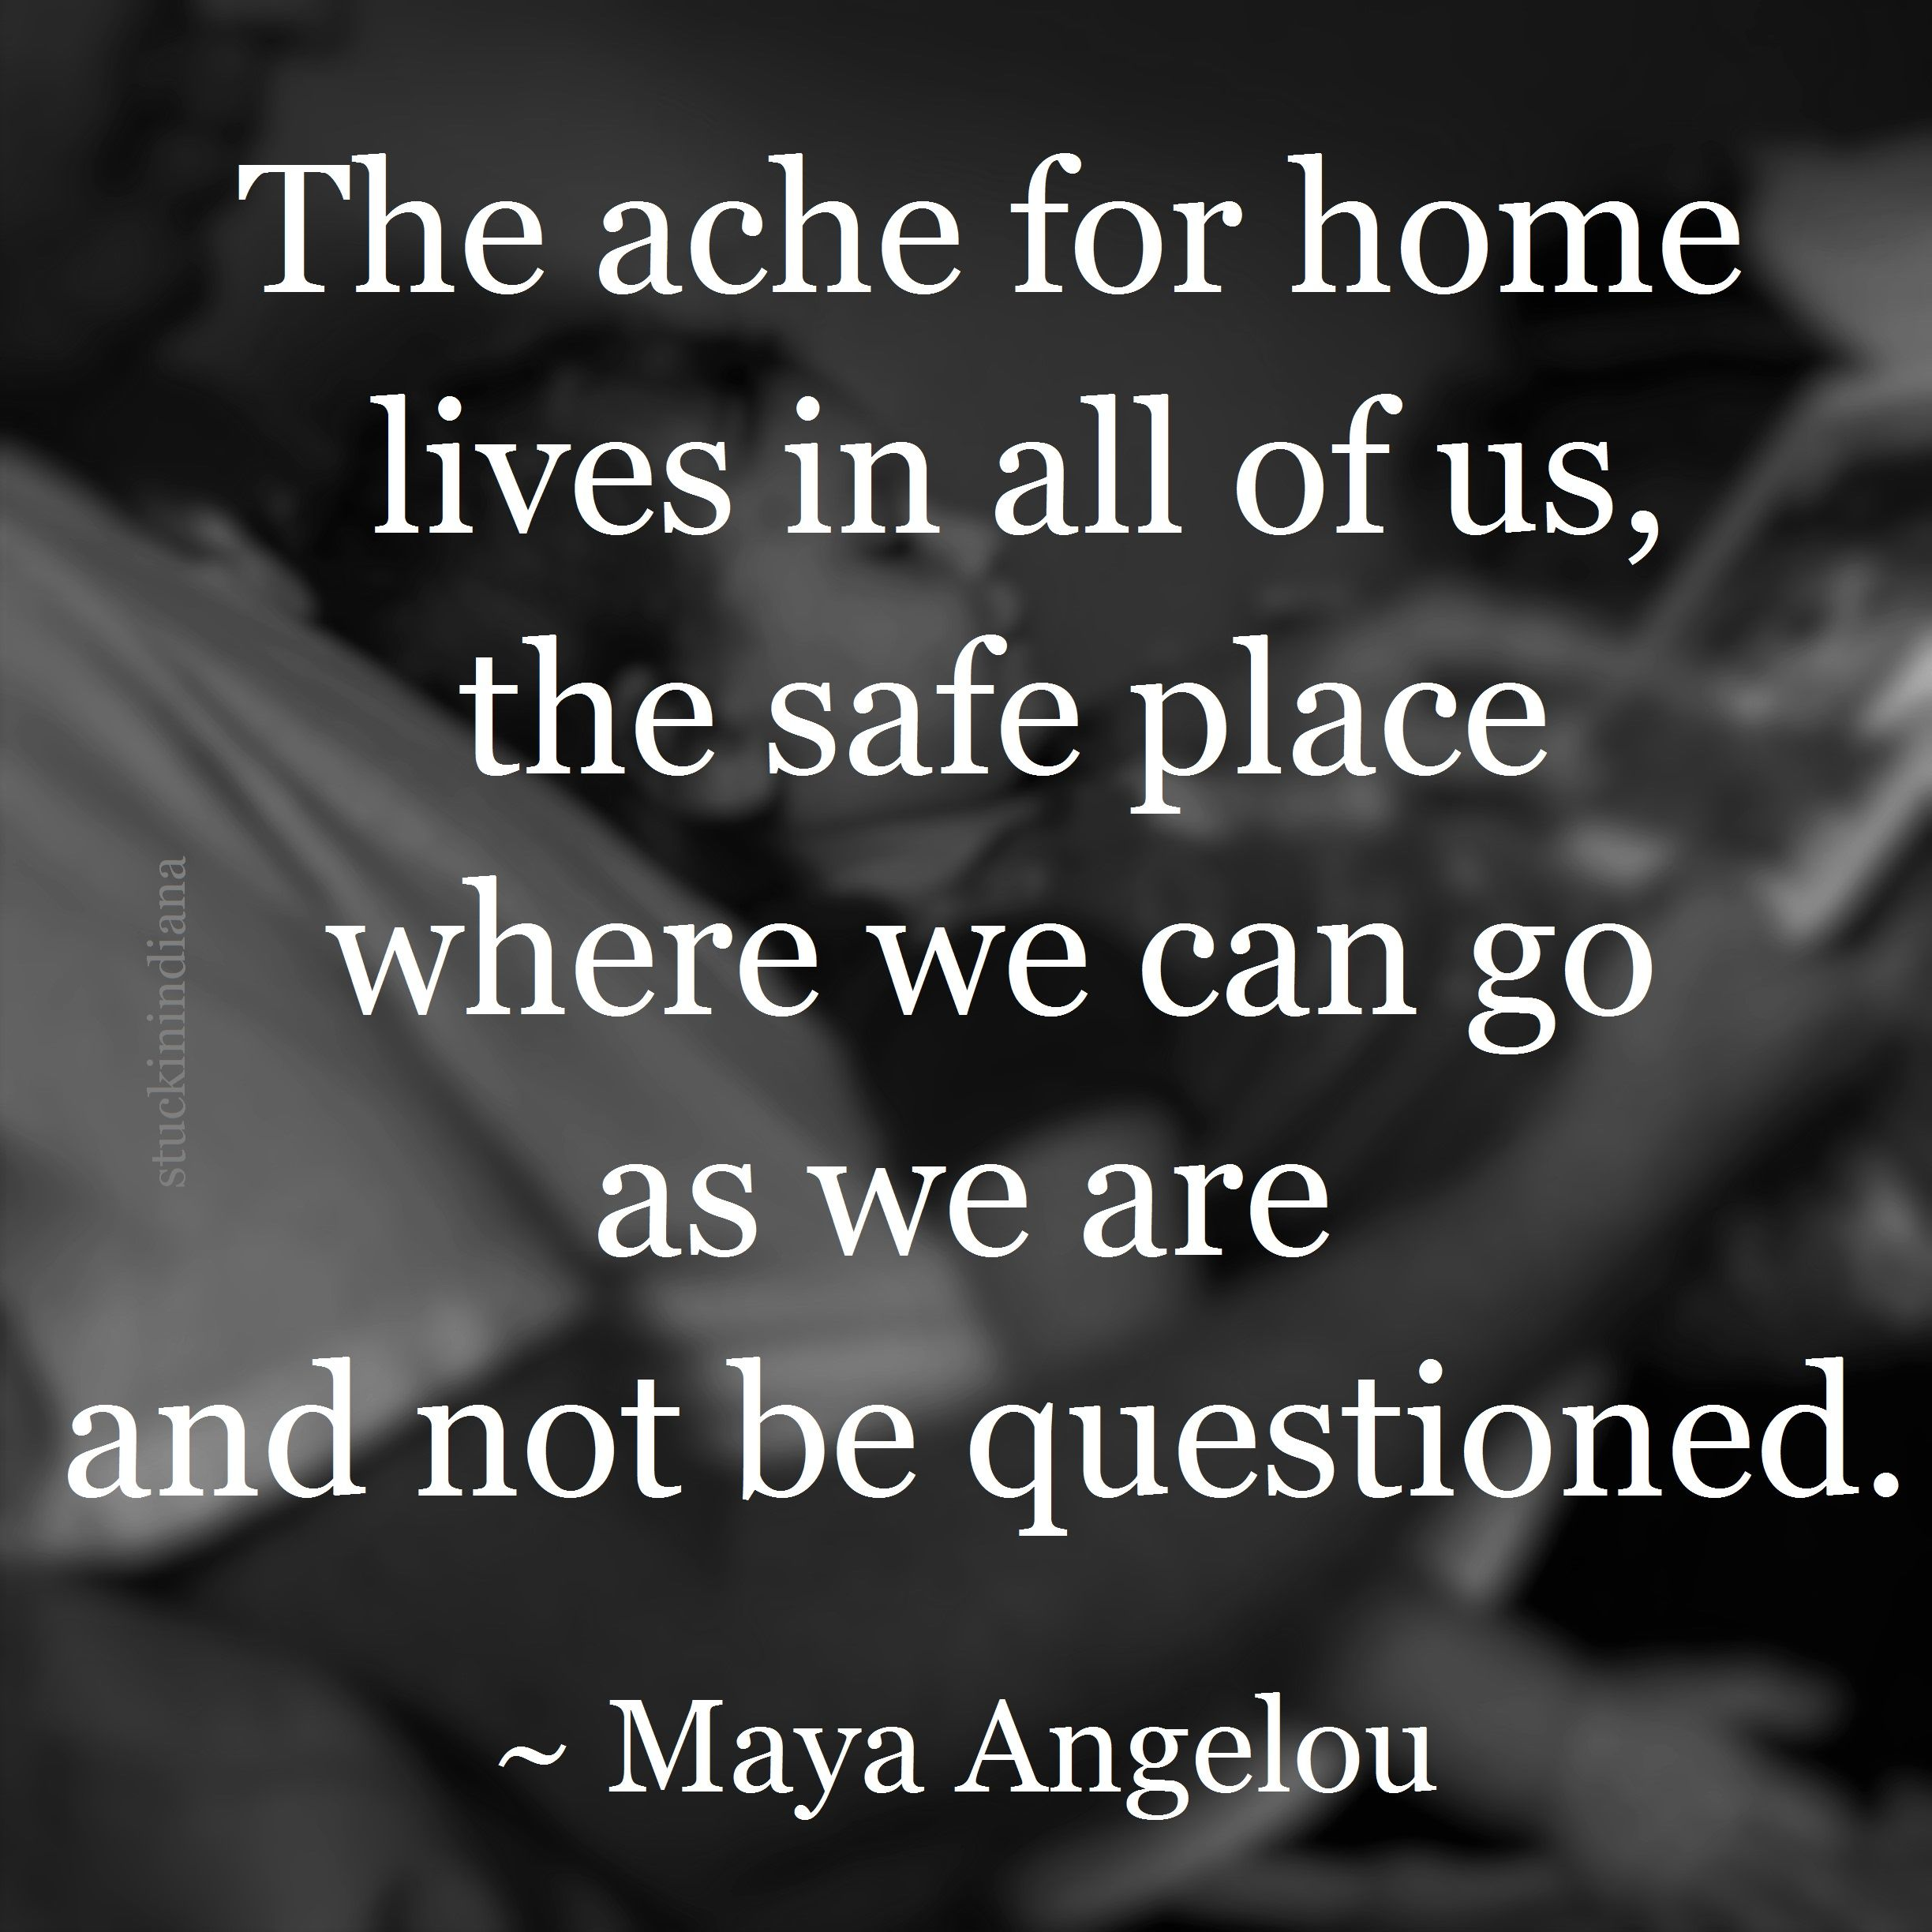 Maya Angelou Quotes About Friendship The Ache For Home Lives In All Of Us The Safe Place Where We Can